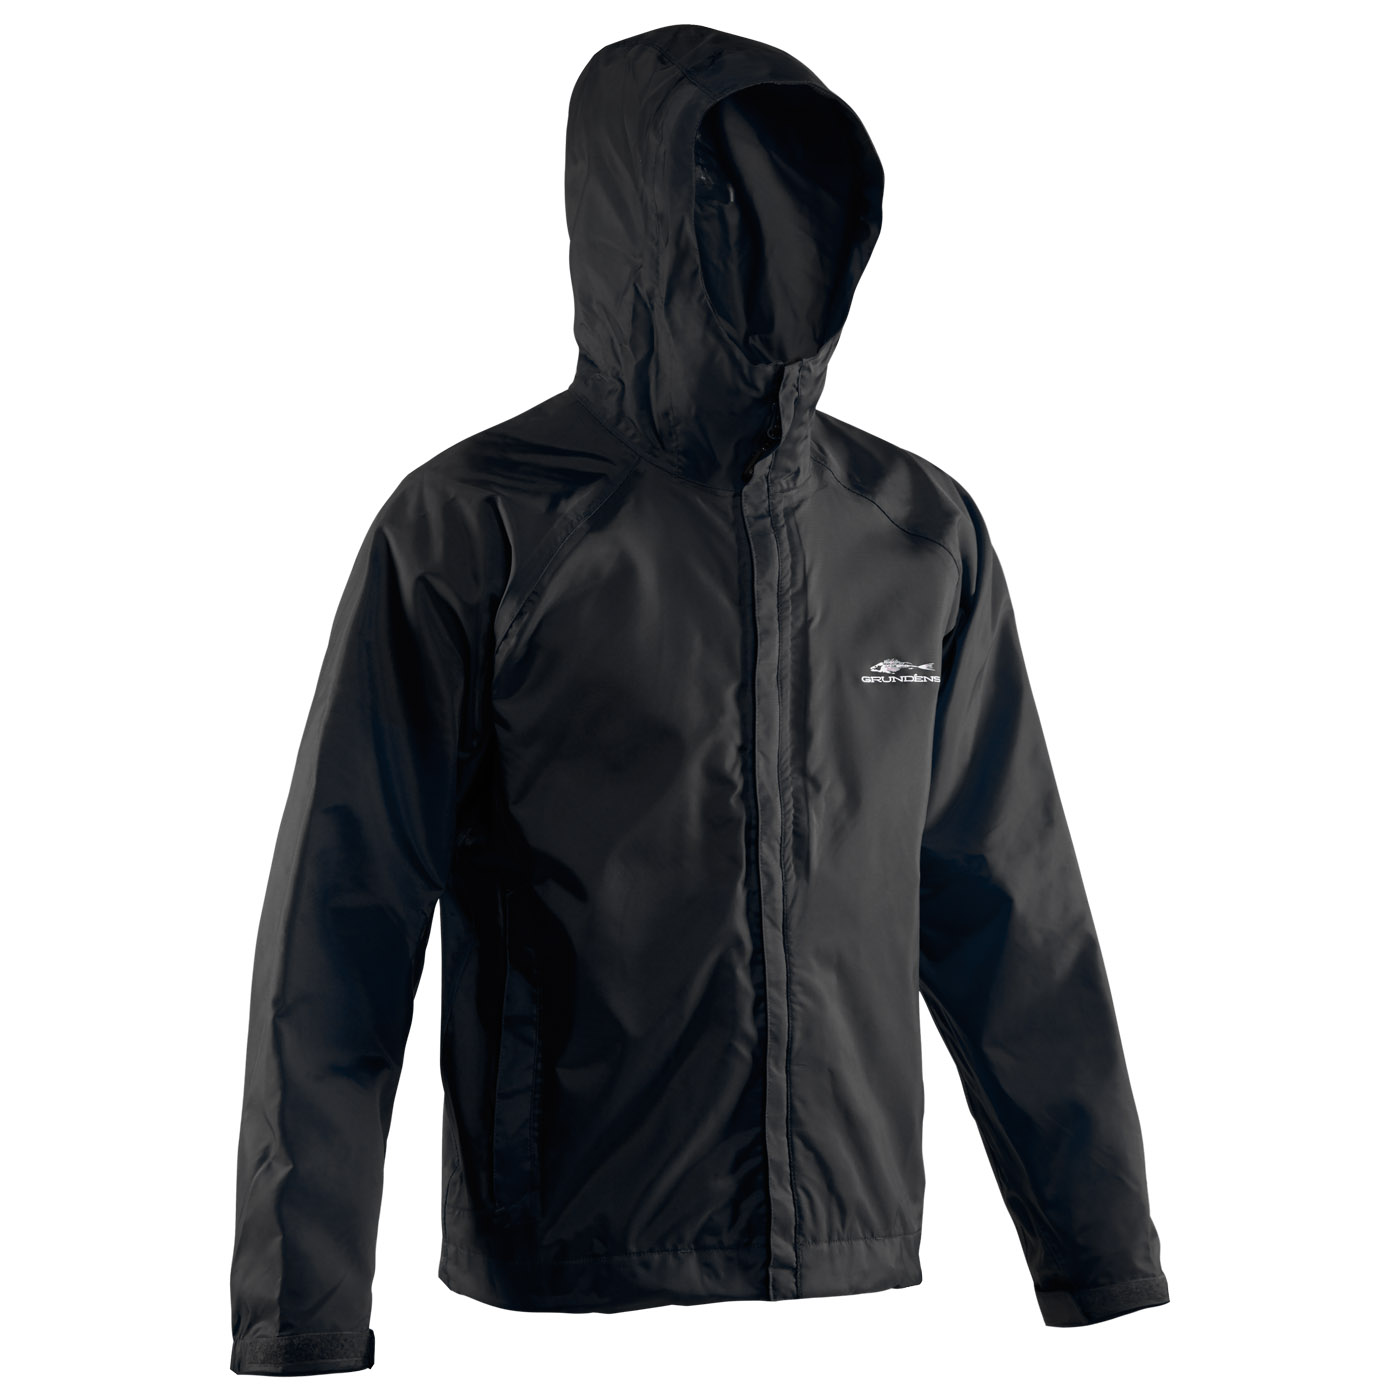 Hooded Jackets weather watch hooded jacket black front view LMREFJK